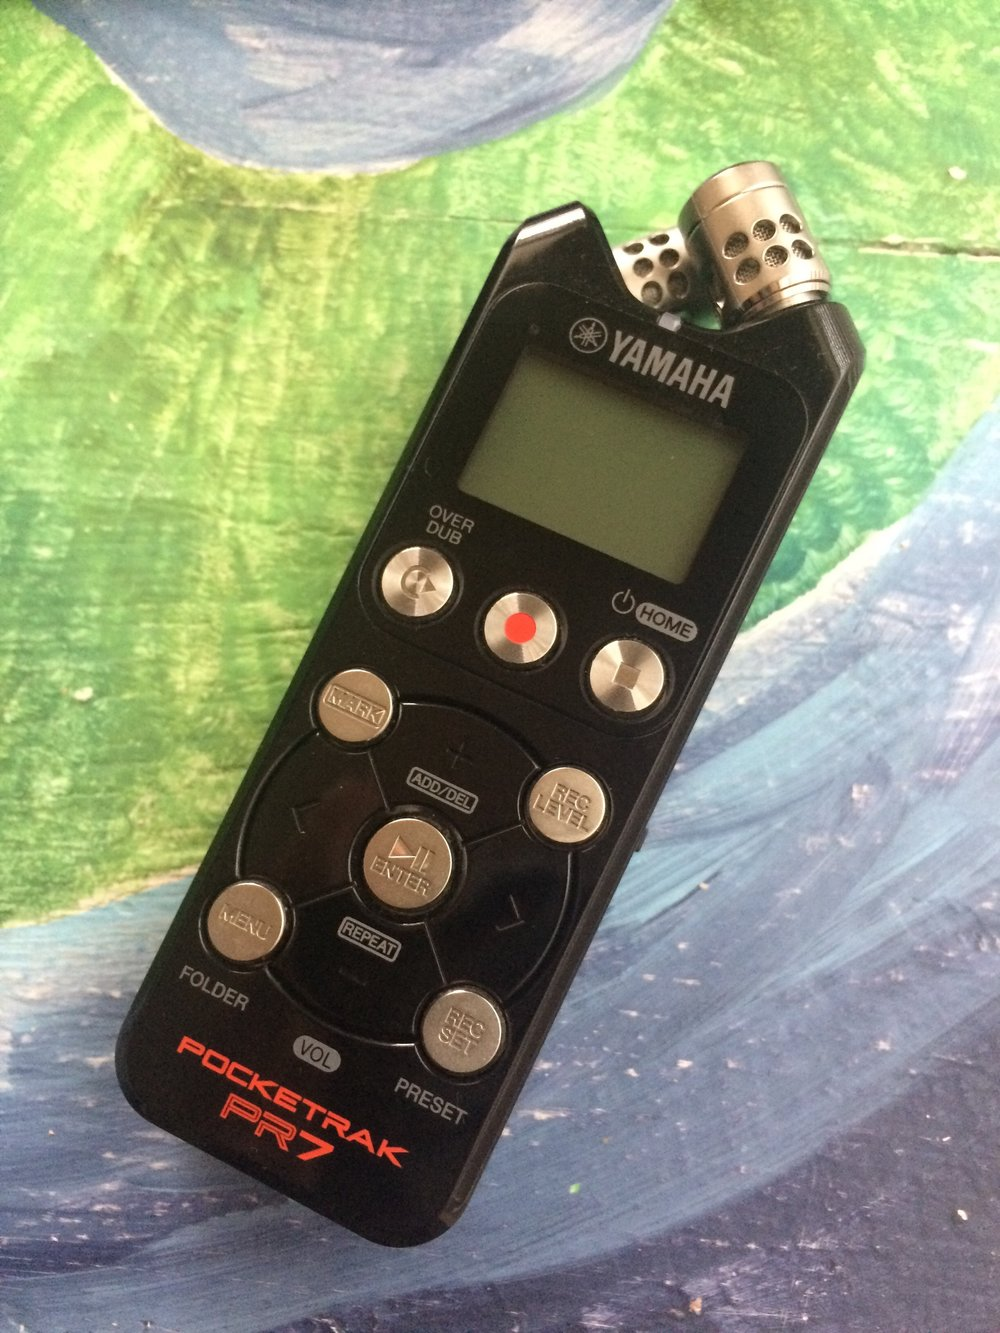 The Yamaha Pocketrak 7: the only tool you need for crystal clear audio.